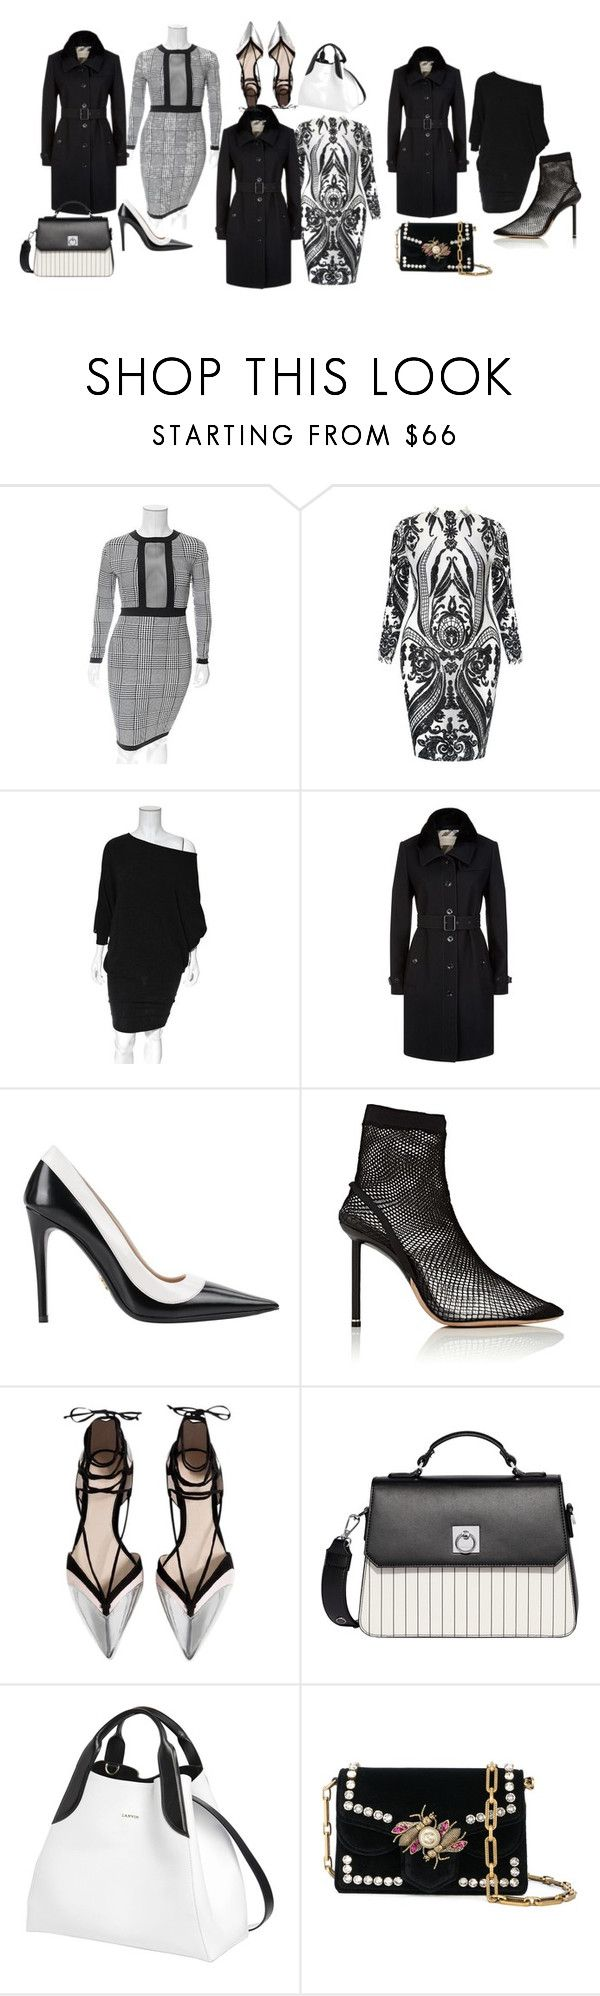 """""""Some days are harder than others - U decide"""" by blujay1126 ❤ liked on Polyvore featuring Burberry, Alexander Wang, Fiorelli, Lanvin and Proenza Schouler"""